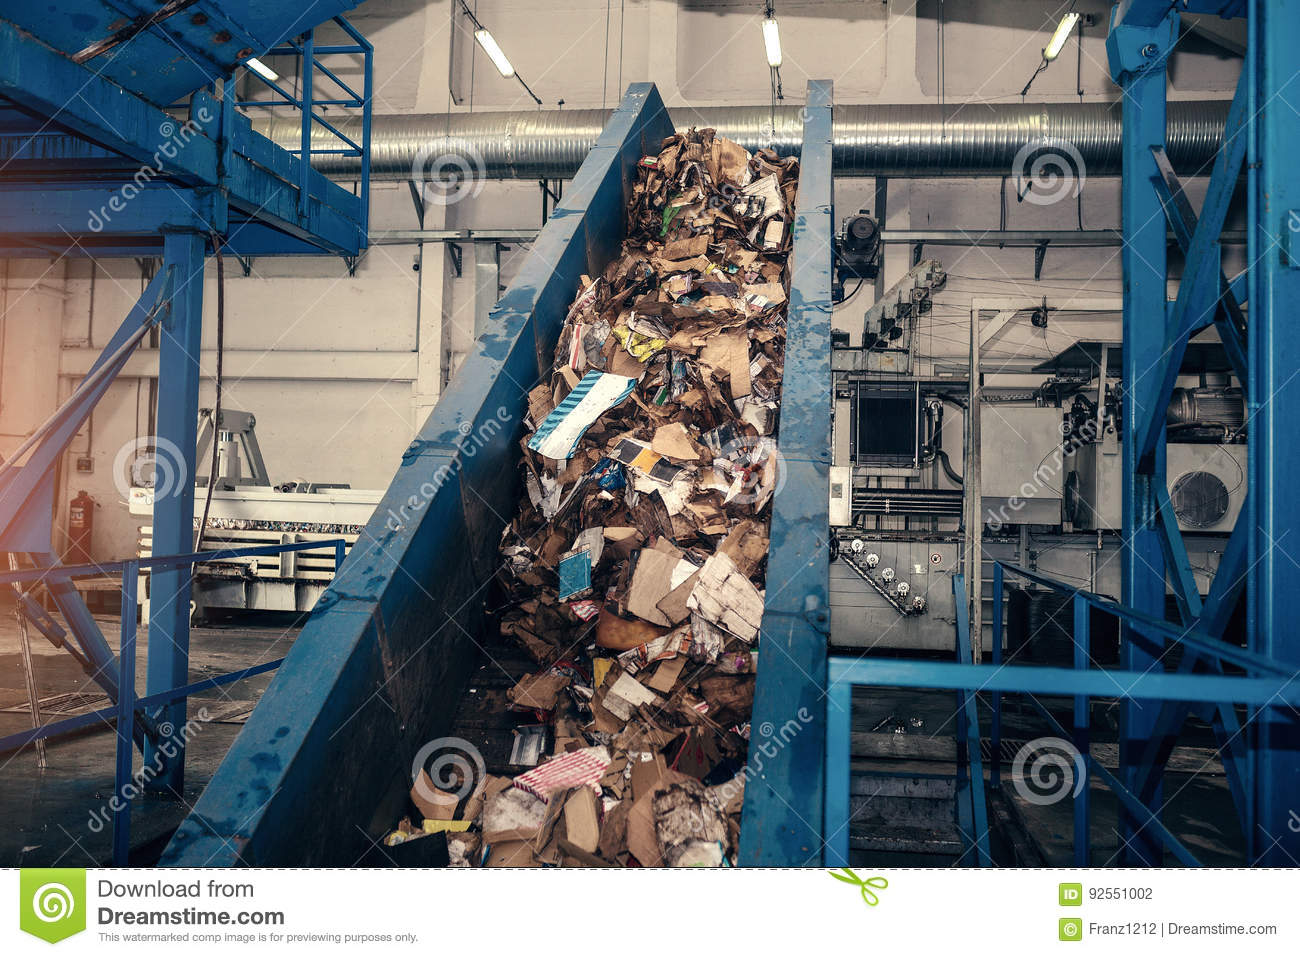 Waste processing plant. Technological process. Recycling and storage of waste for further disposal. Business for sorting